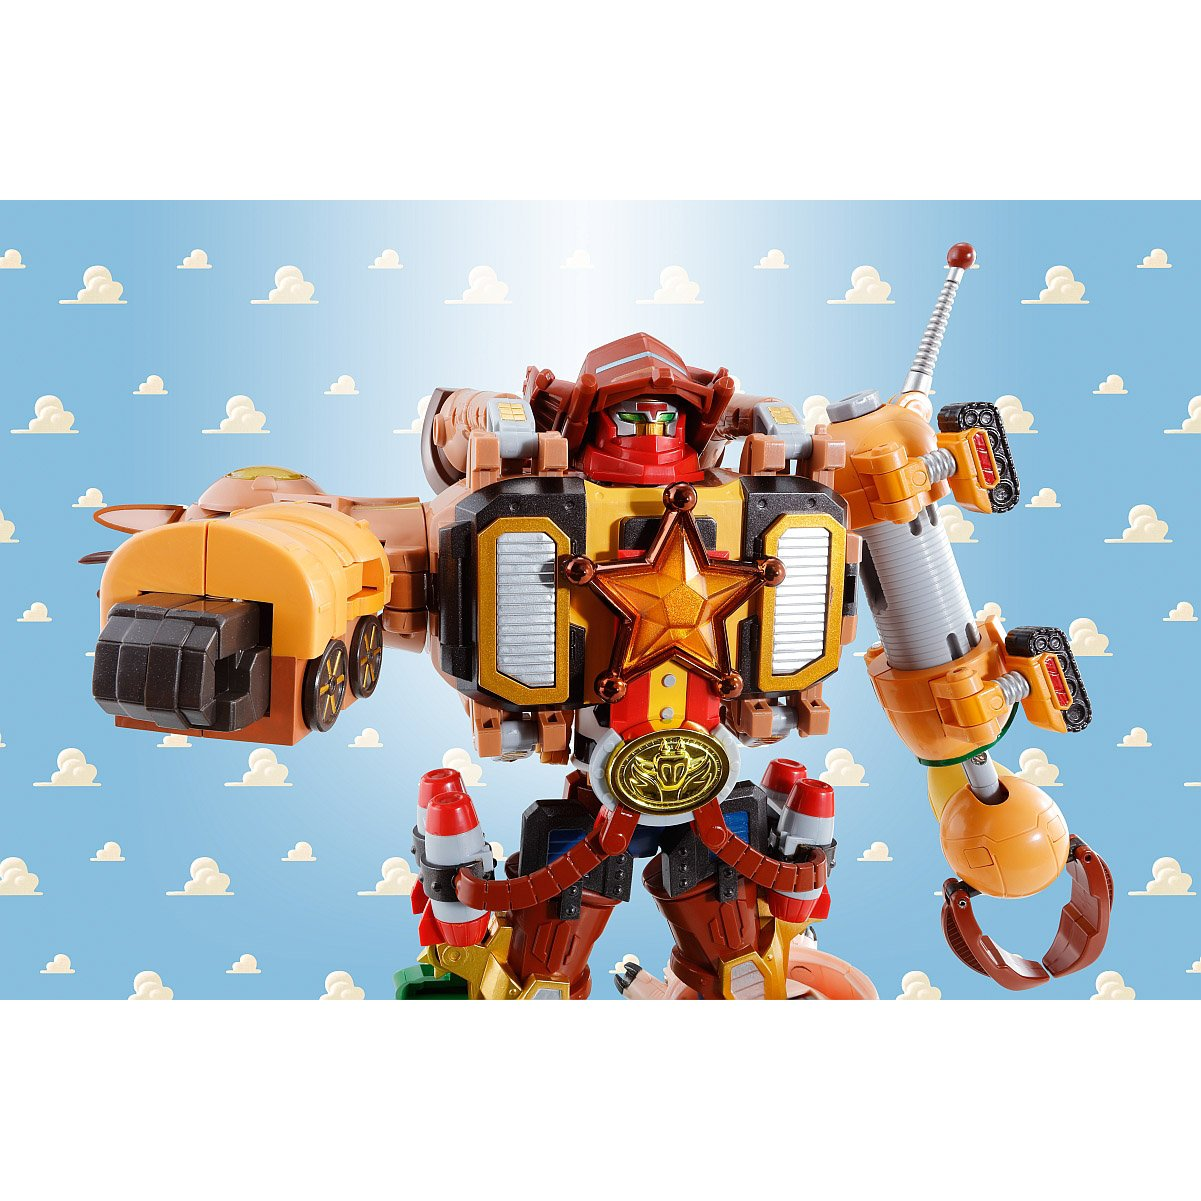 1 Free Classic Trading Card Bundle Bandai Chogokin x Toy Story Combination Die-Cast Action Figure Disney Woody Robo Sheriff Star